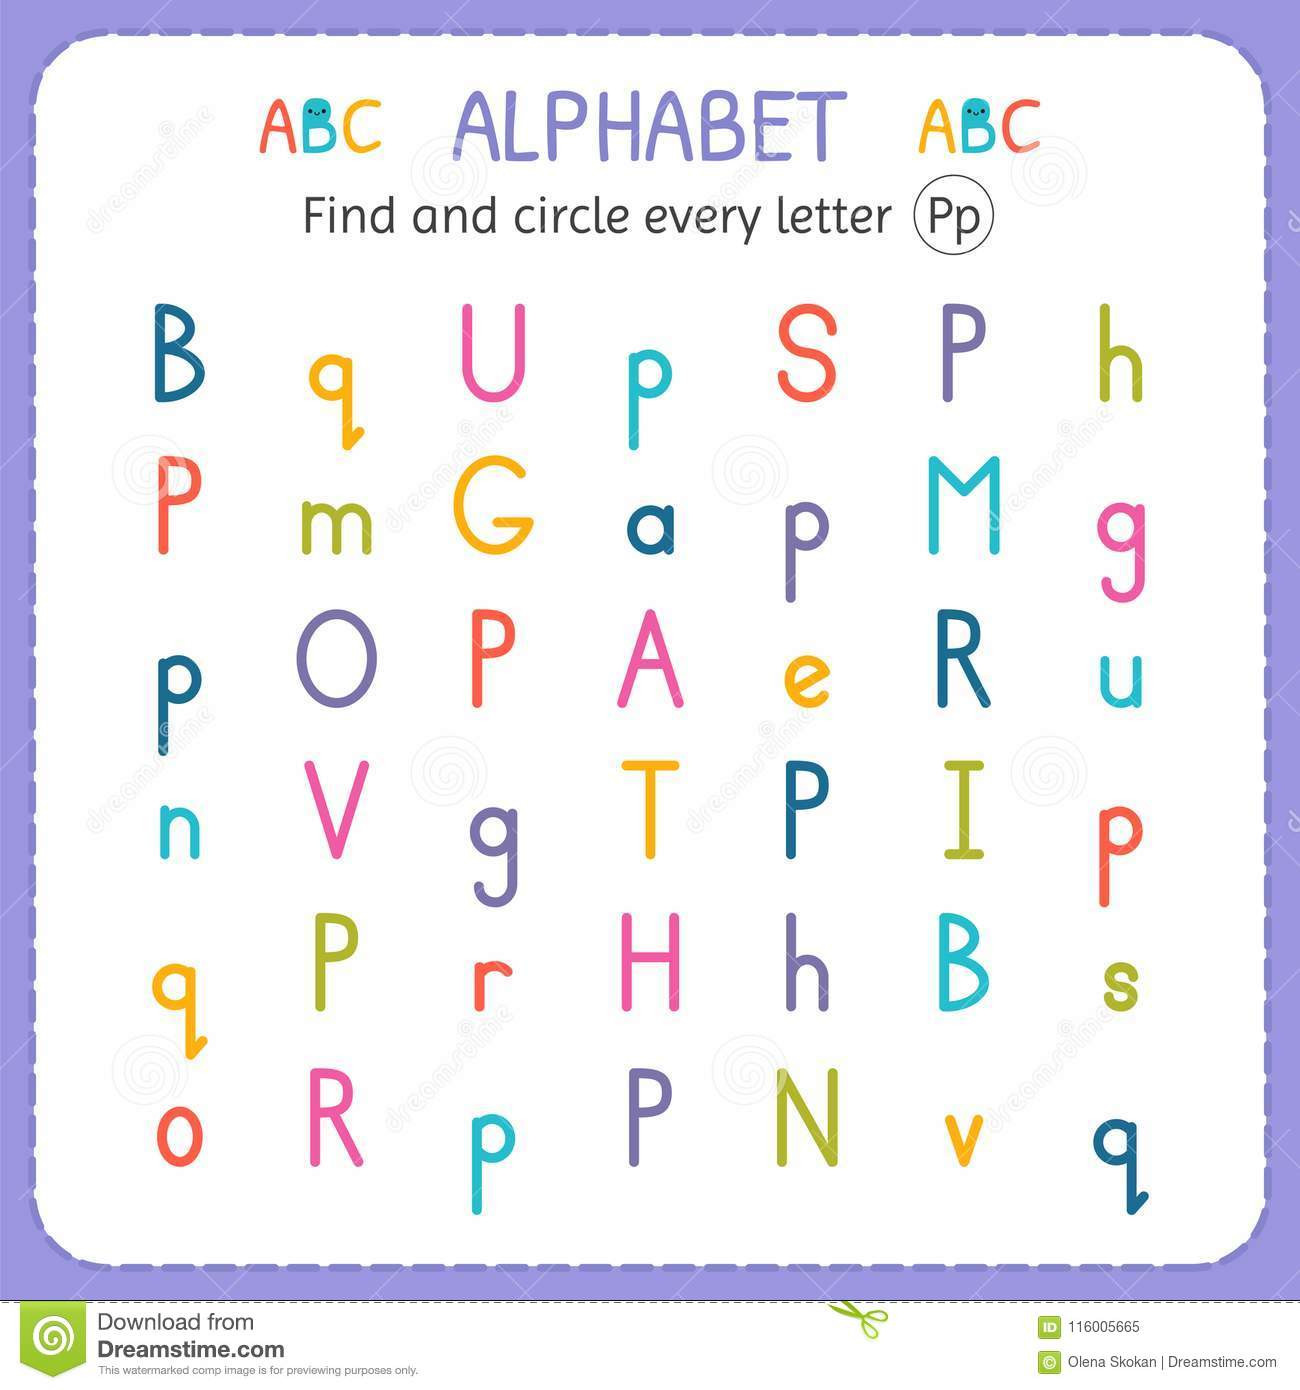 Letter P Worksheets Preschool Find and Circle Every Letter P Worksheet for Kindergarten